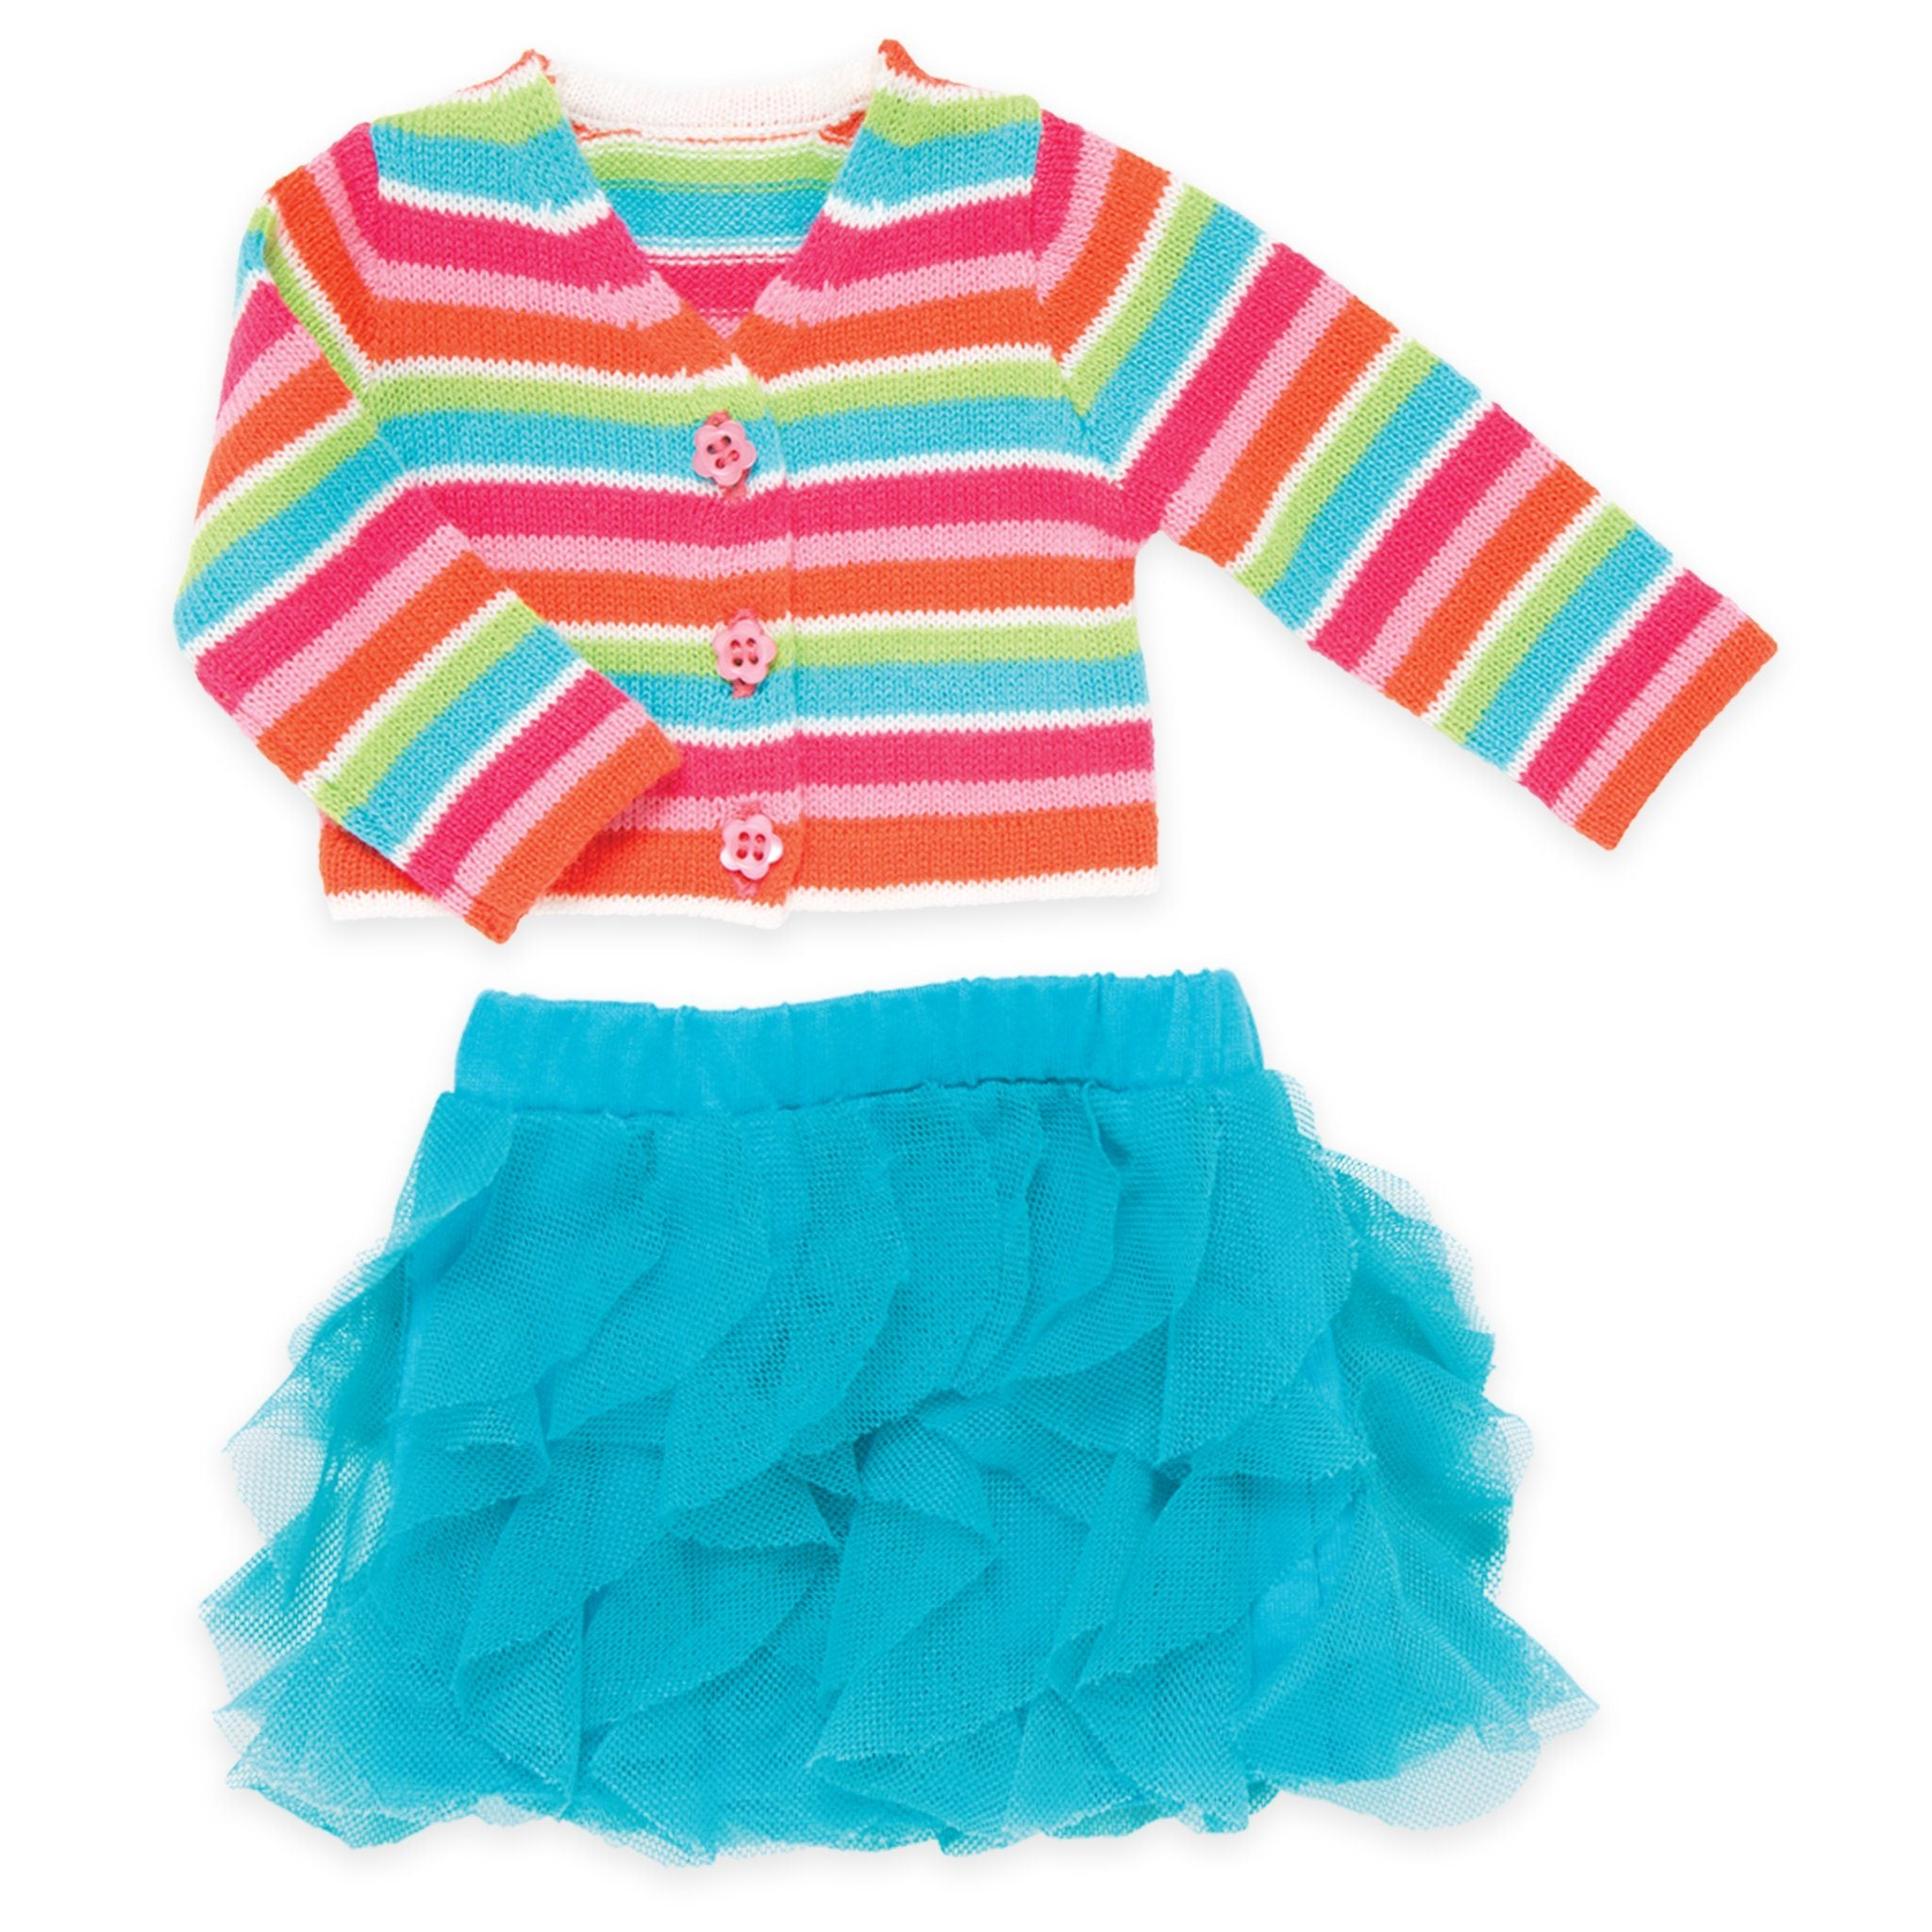 Bright colourful striped button-up sweater, blue ruffle skirt fits all 18 inch dolls.